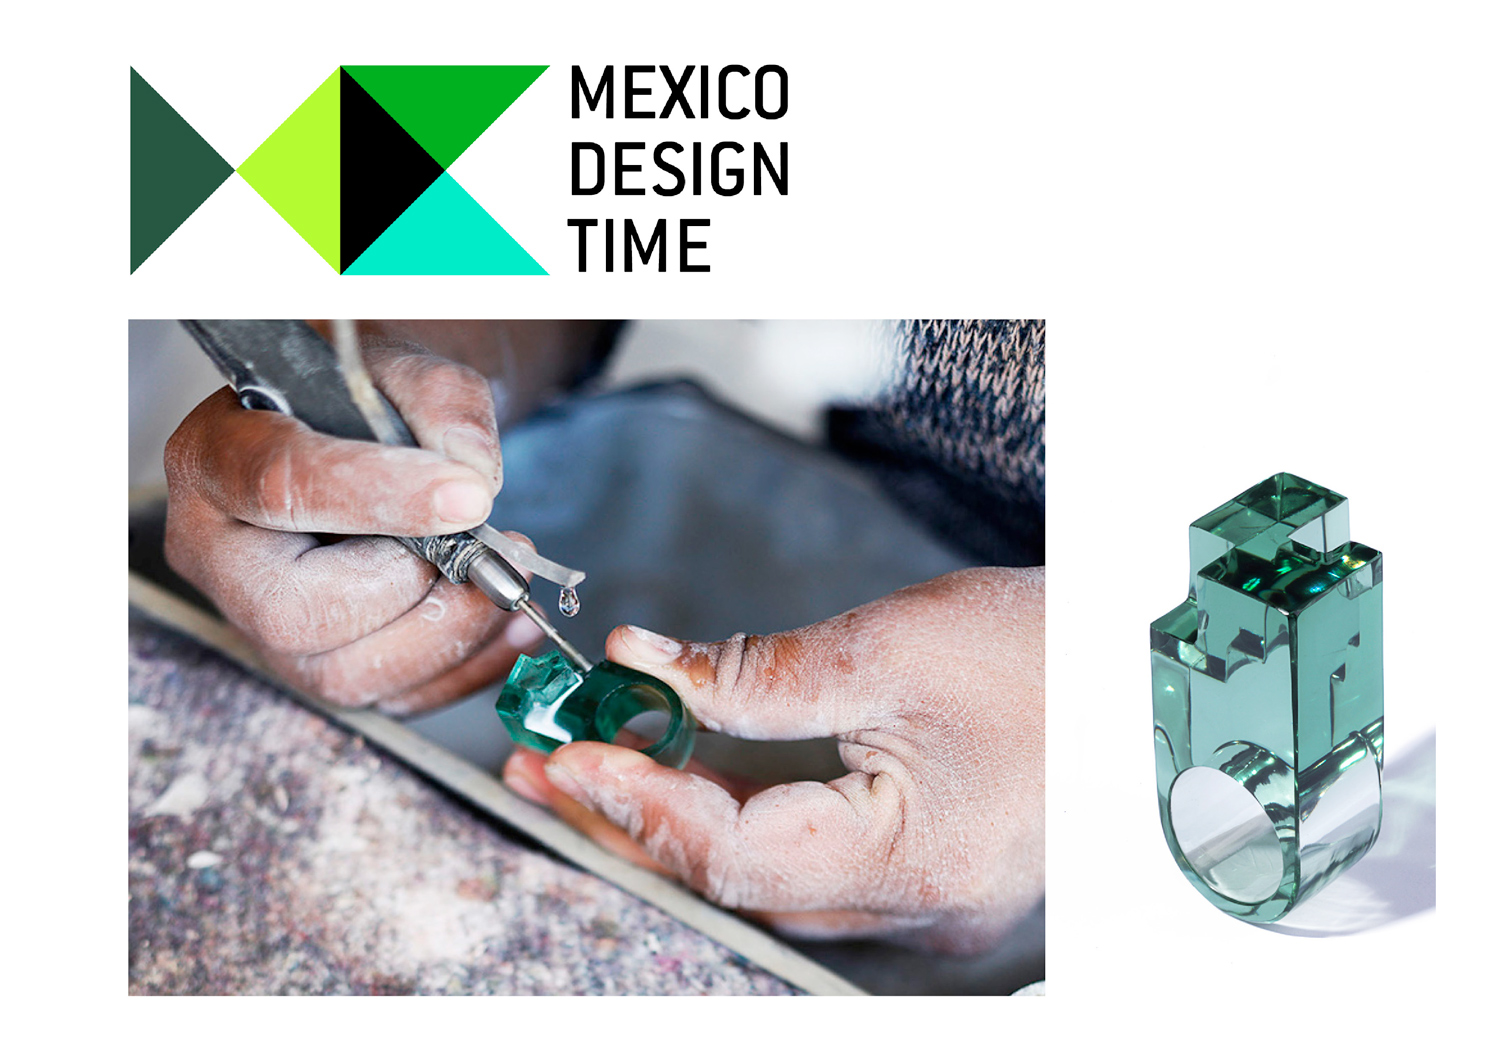 mexico-design-time-exhibition-lead-image-marion-friedmann-gallery.jpg